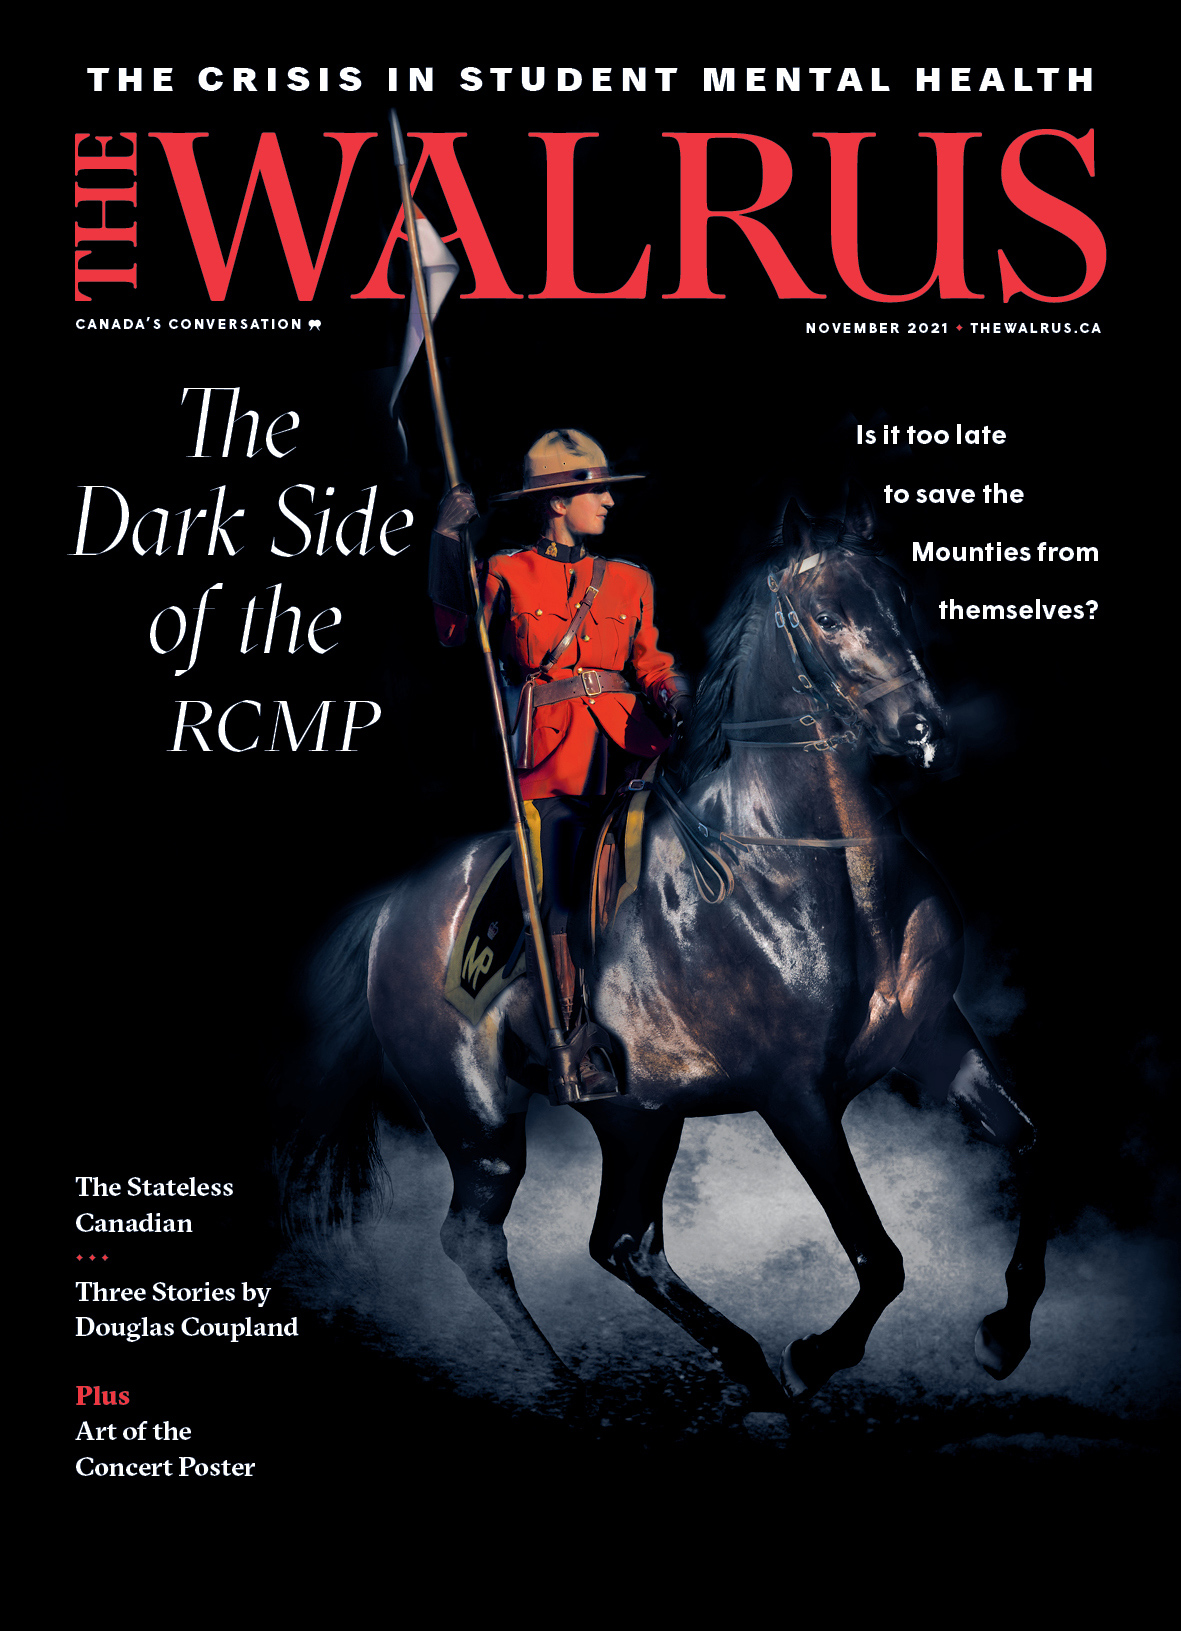 Cover of the Nov issue of The Walrus magazine.